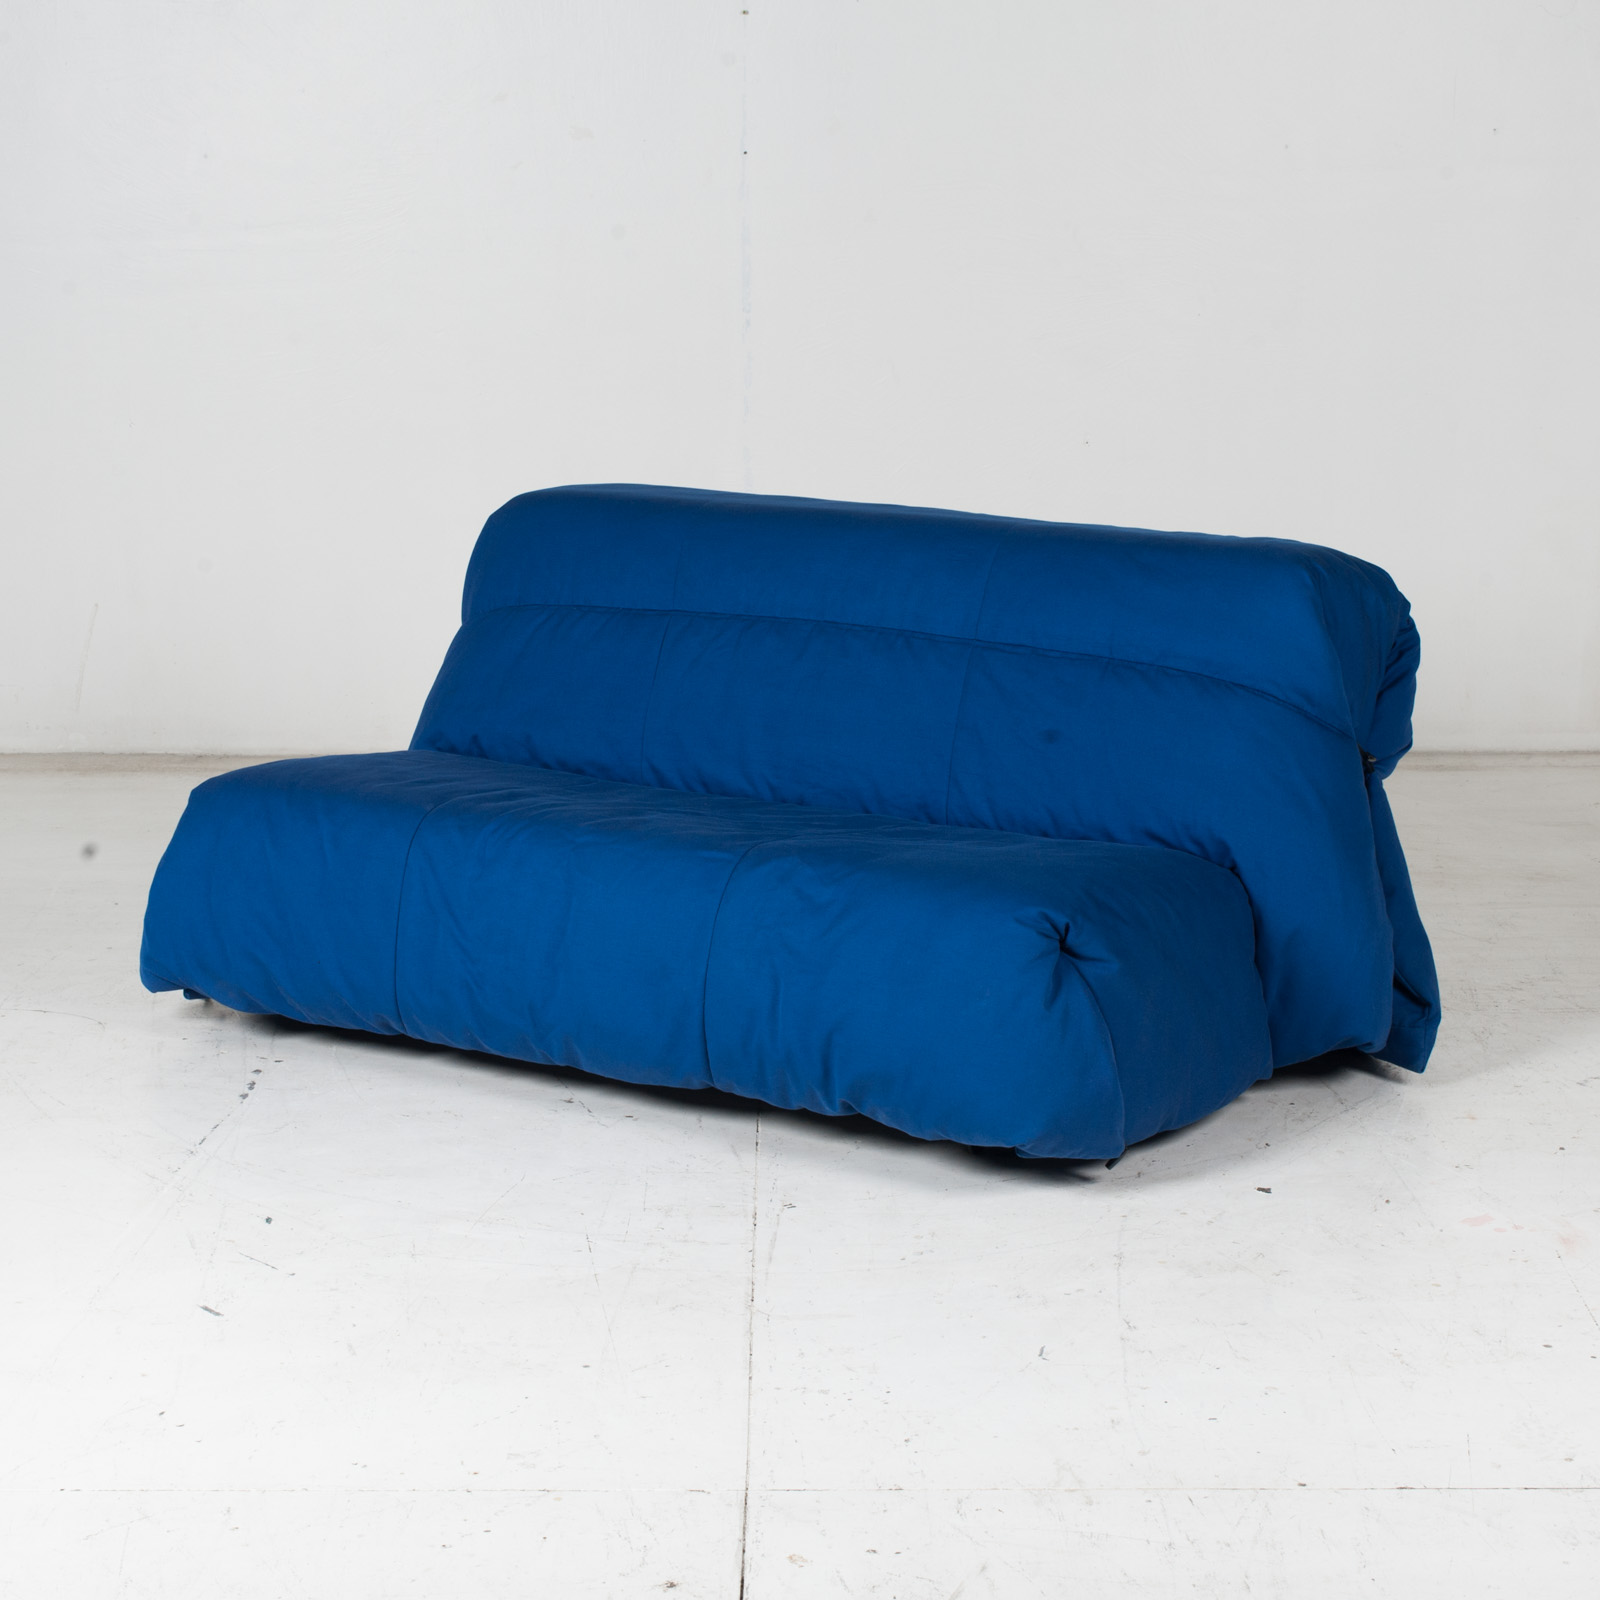 Sofa Bed By Ligne Roset In Blue Upholstery, 1960s, France4